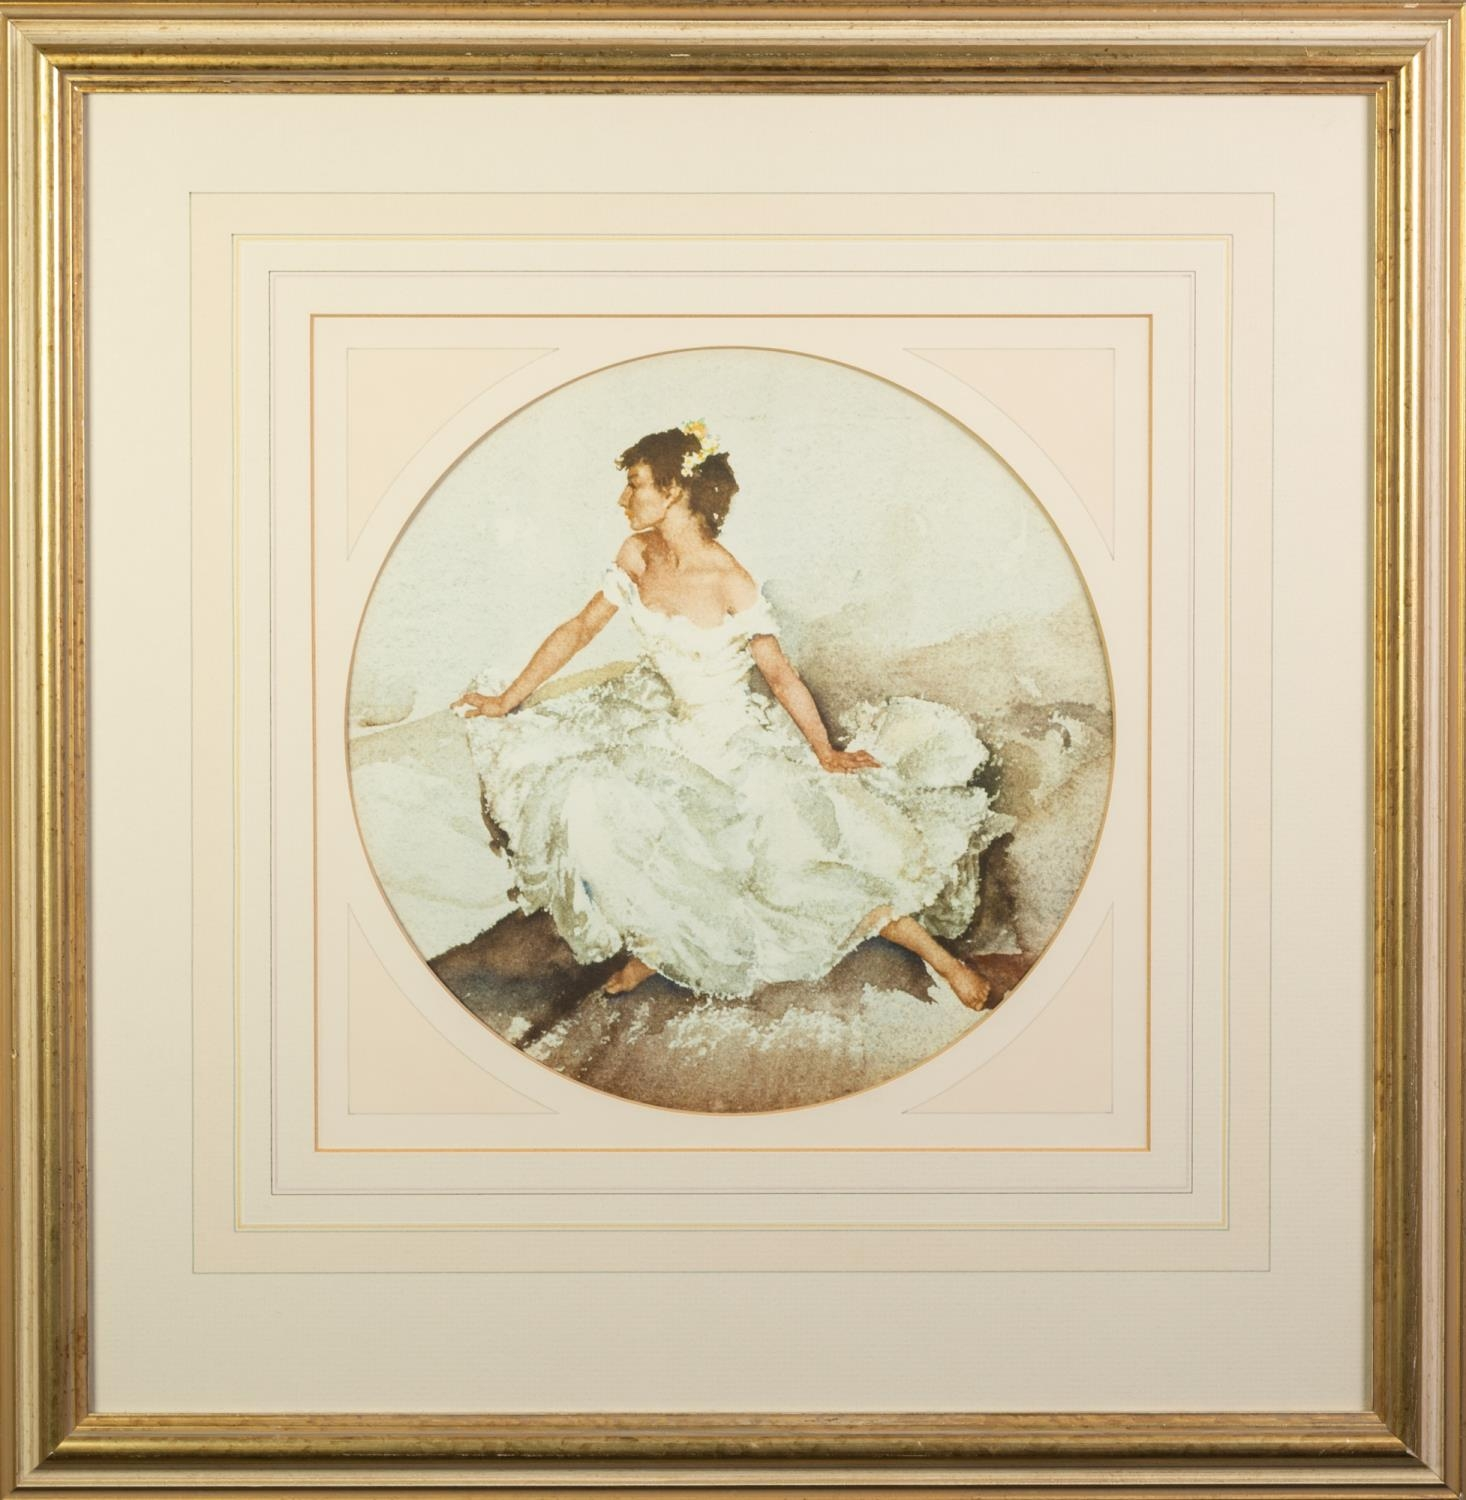 W. RUSSELL FLINT ARTIST SIGNED COLOUR PRINT Semi-clad female figure at a washing well Guild blind - Image 4 of 6